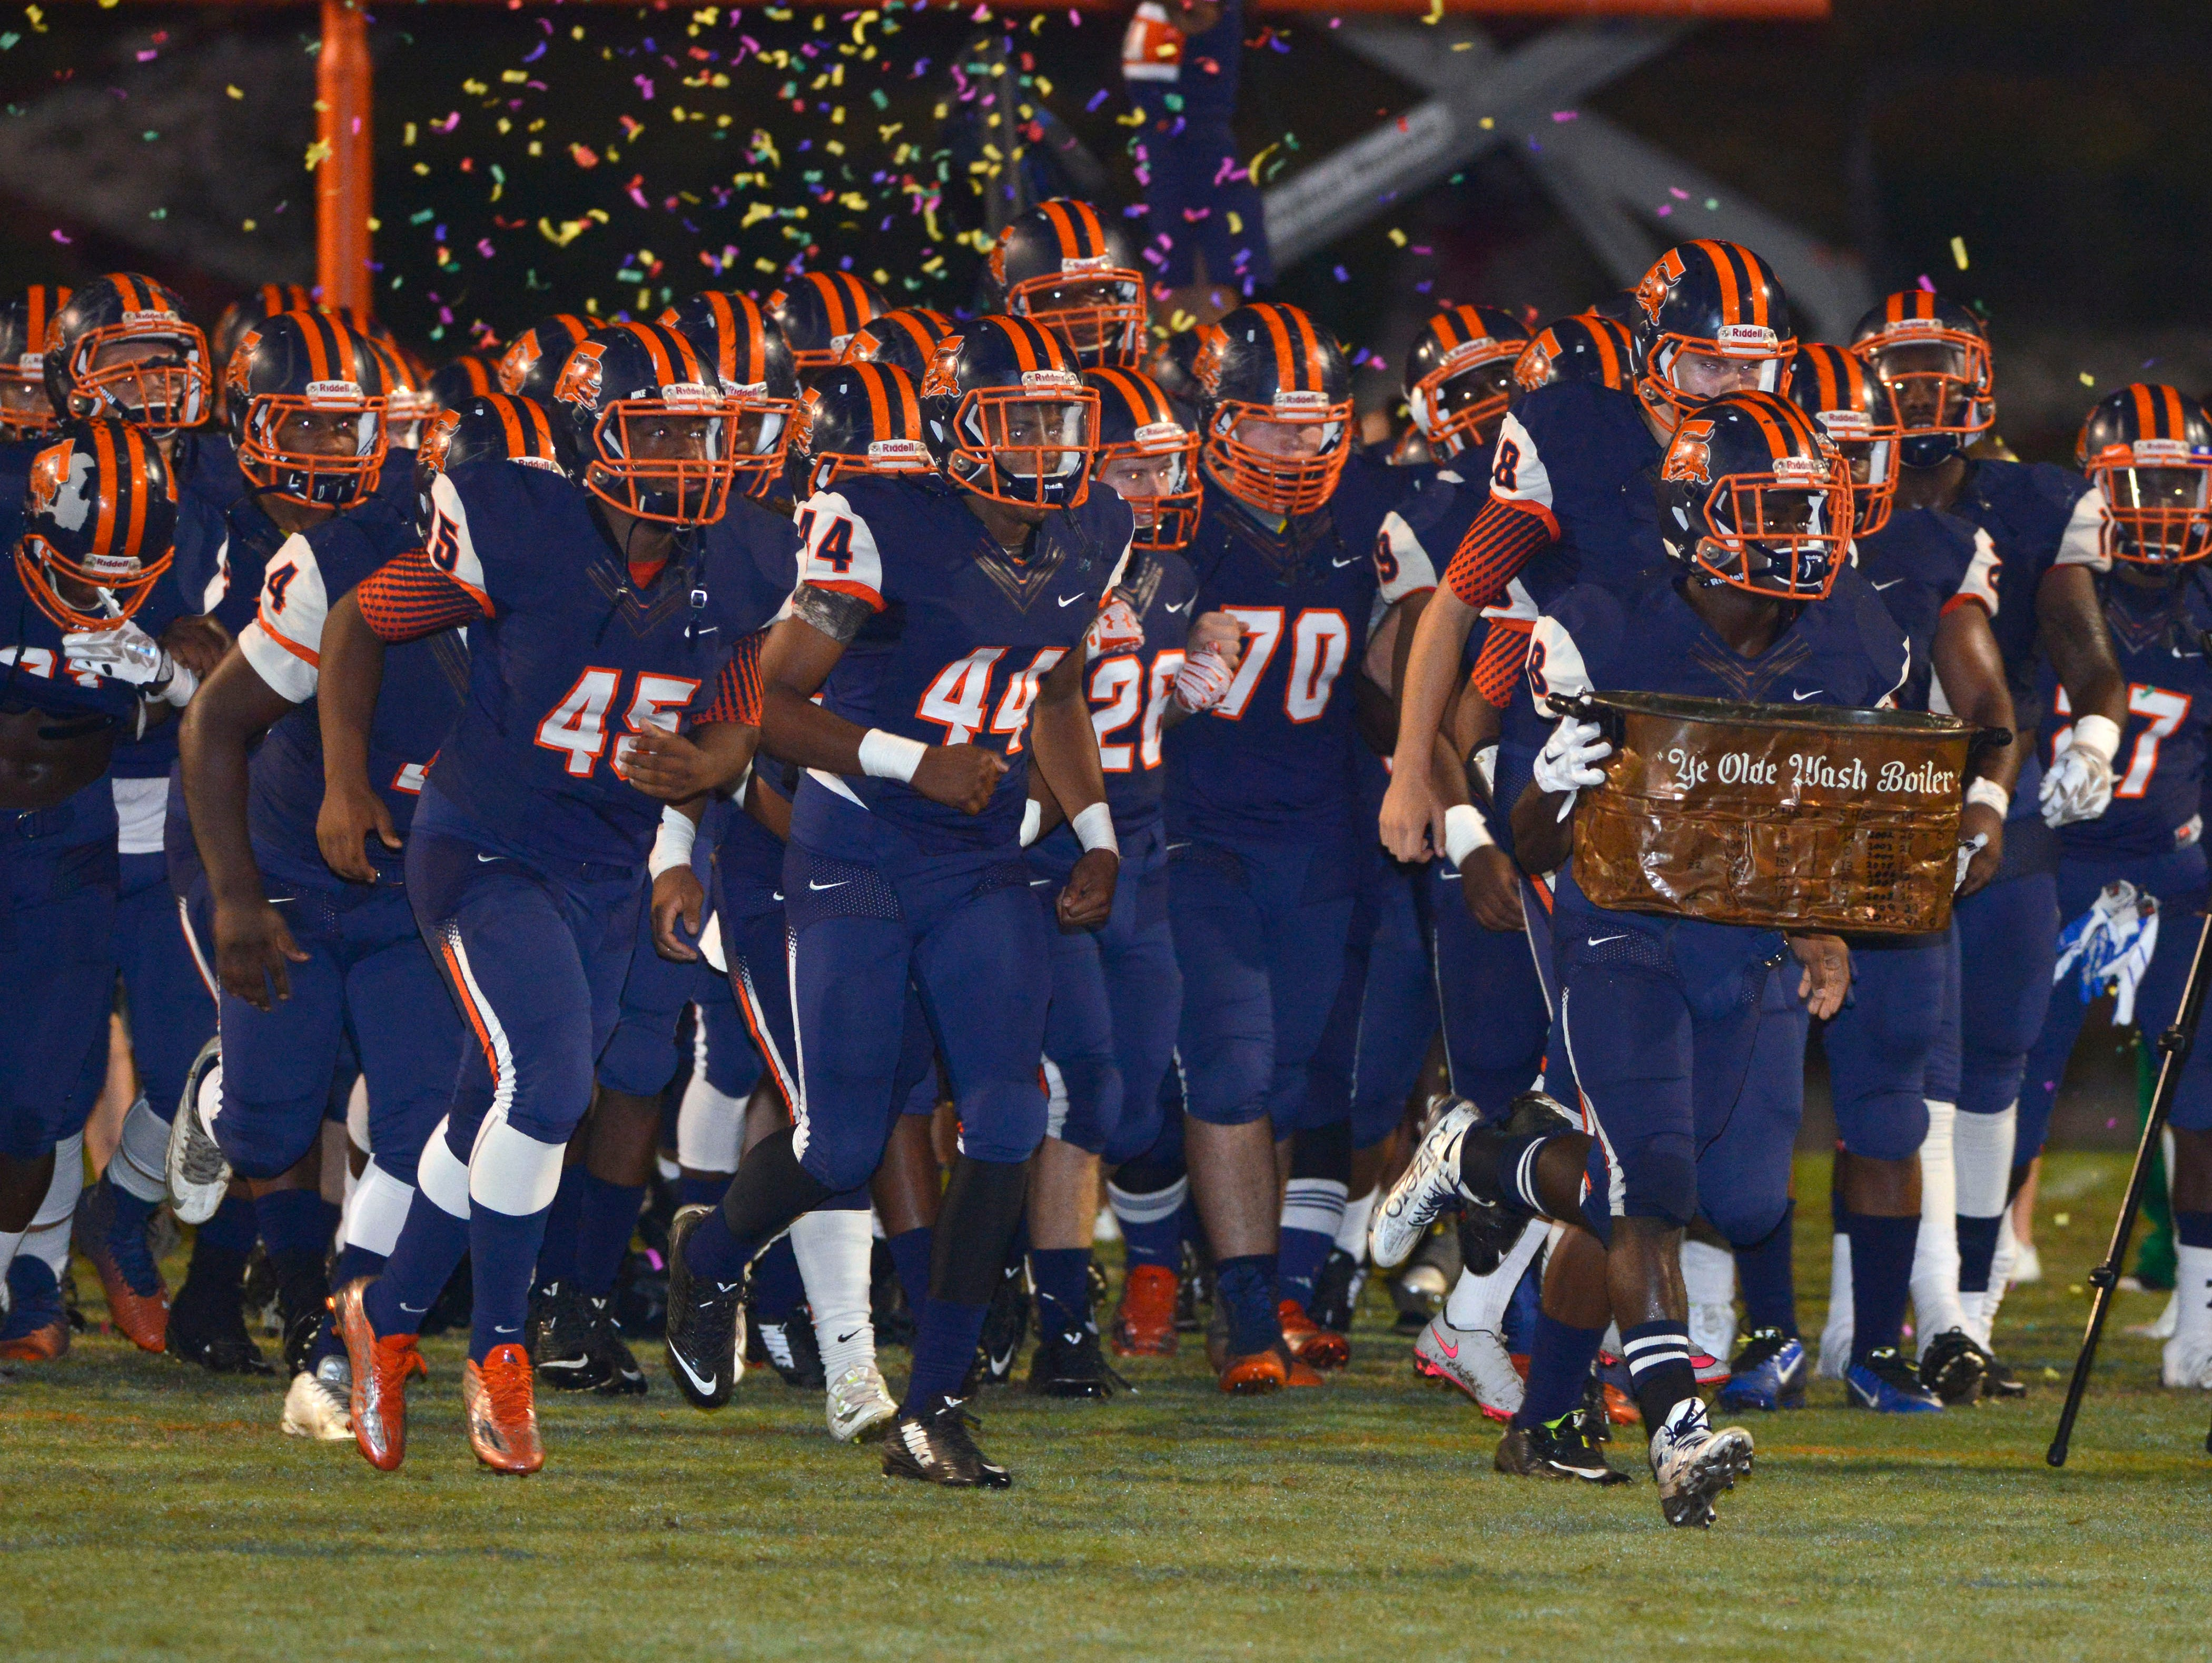 Escambia's Jabir Frye brings out Ye Olde Wash Boiler during the Escambia High and Pensacola High School football rivalry at Escambia High School. Some coaches are worried that these traditional rivalries may disappear if the FHSAA's new playoff proposal is passed.